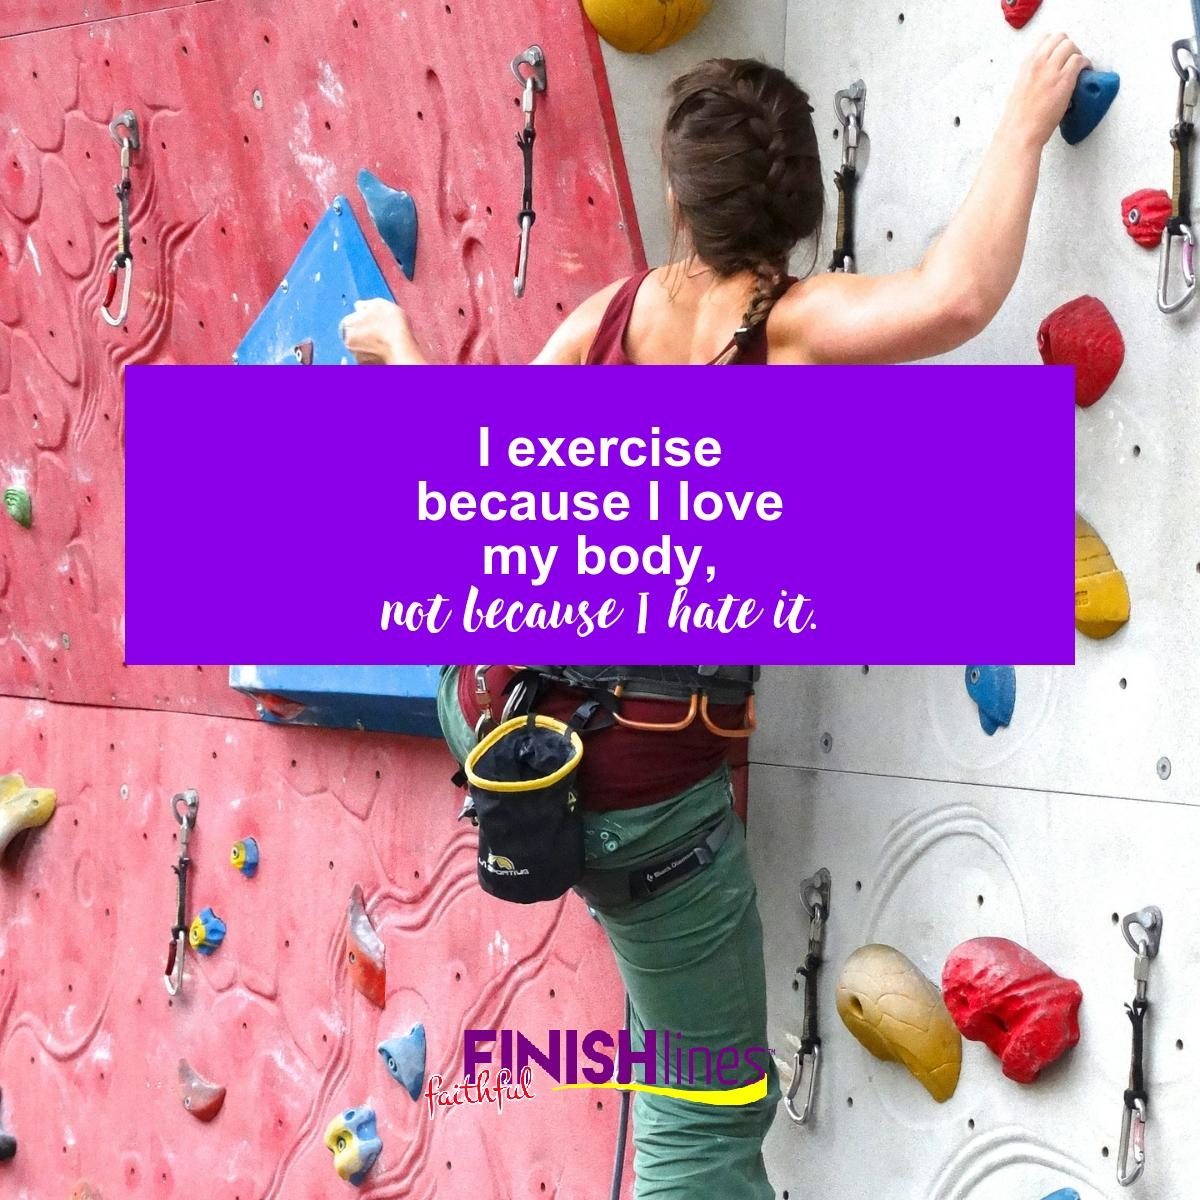 I exercise because I love my body, not because I hate it.